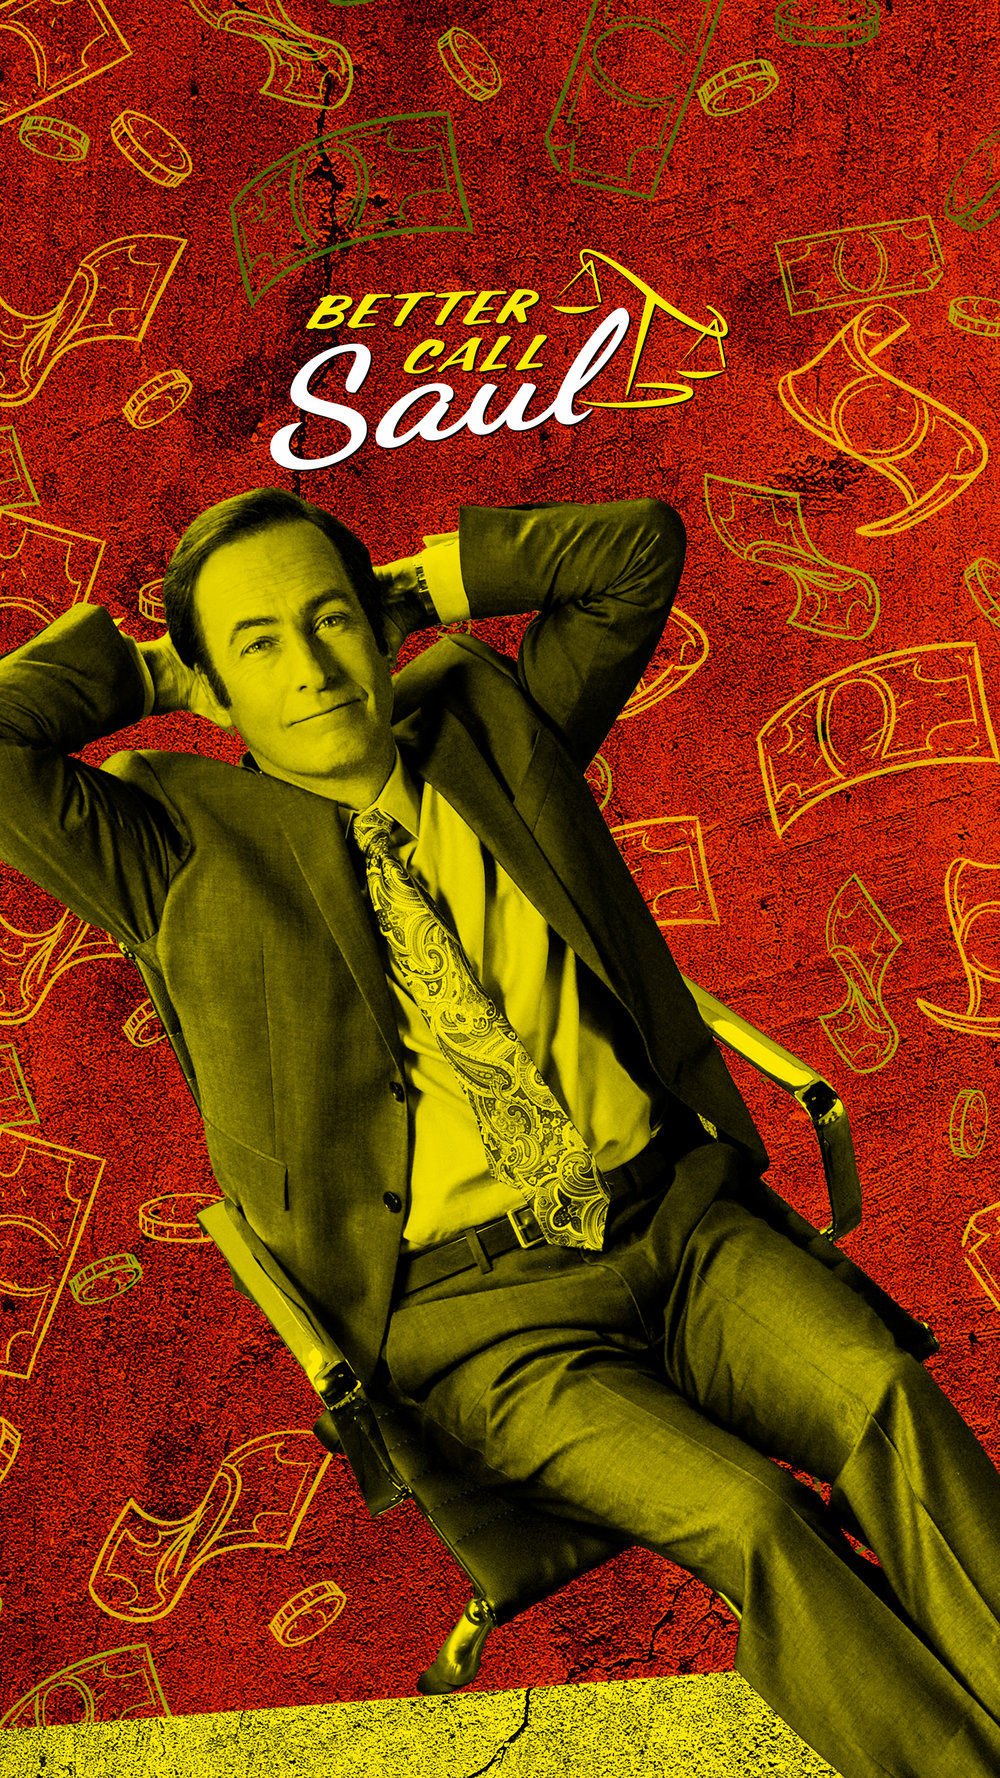 BetterCallSaul_Zedge_2250x4000_15.jpg